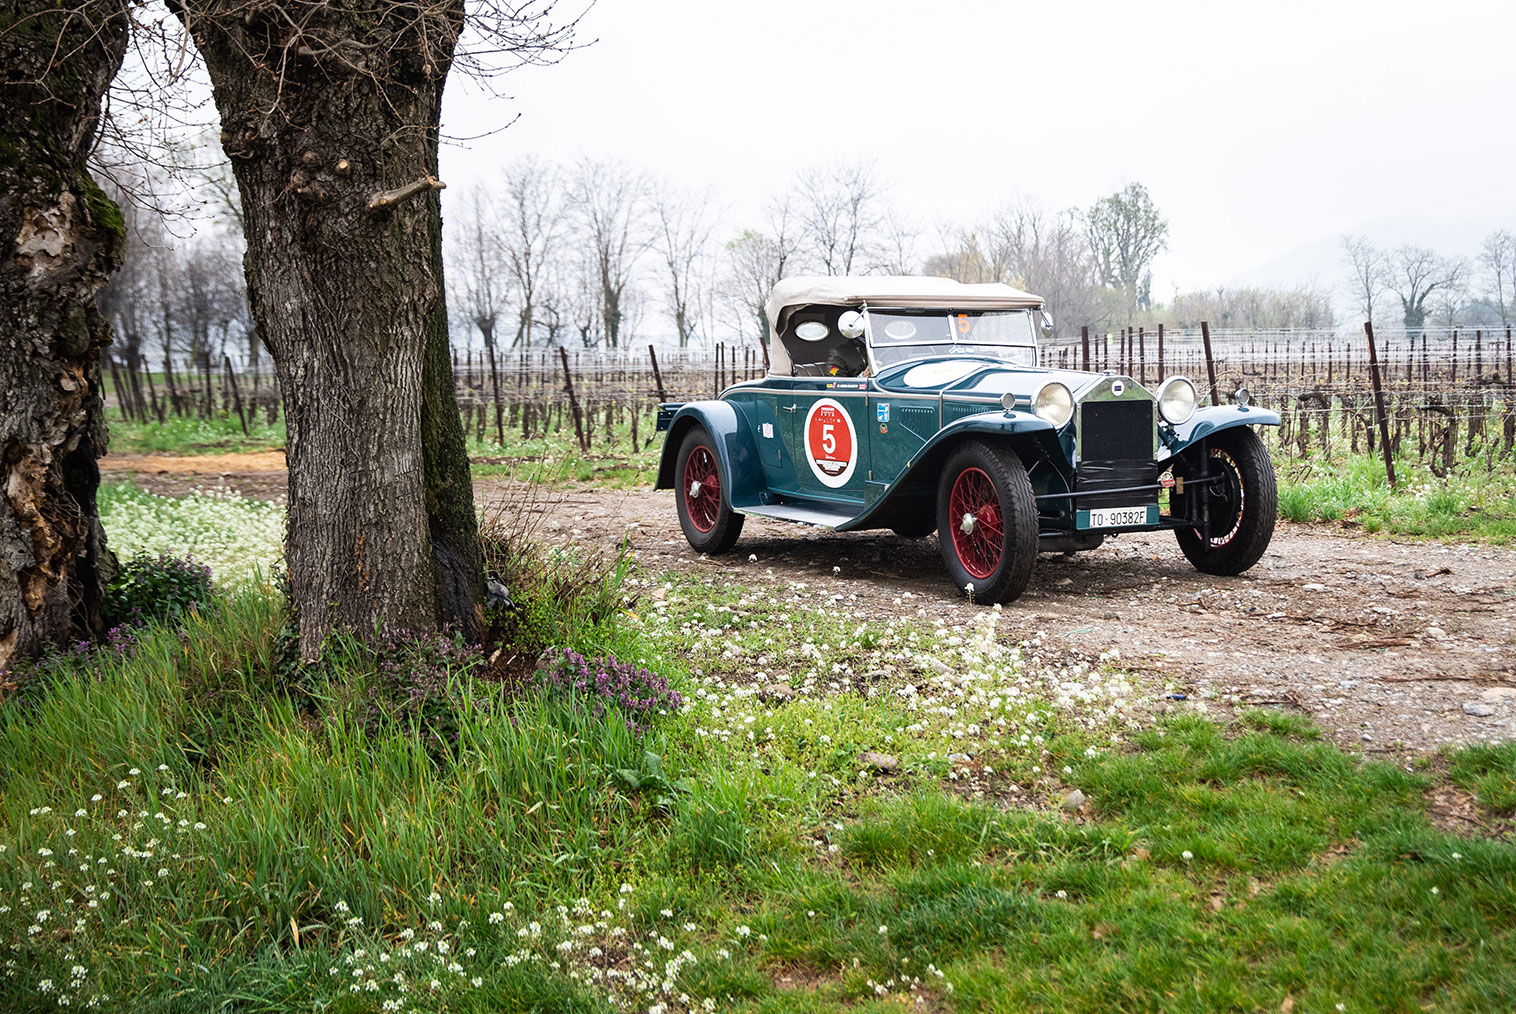 Belometti-Vavassori win the 12th edition on a 1929 Lancia Lambda 221 Spider Casaro